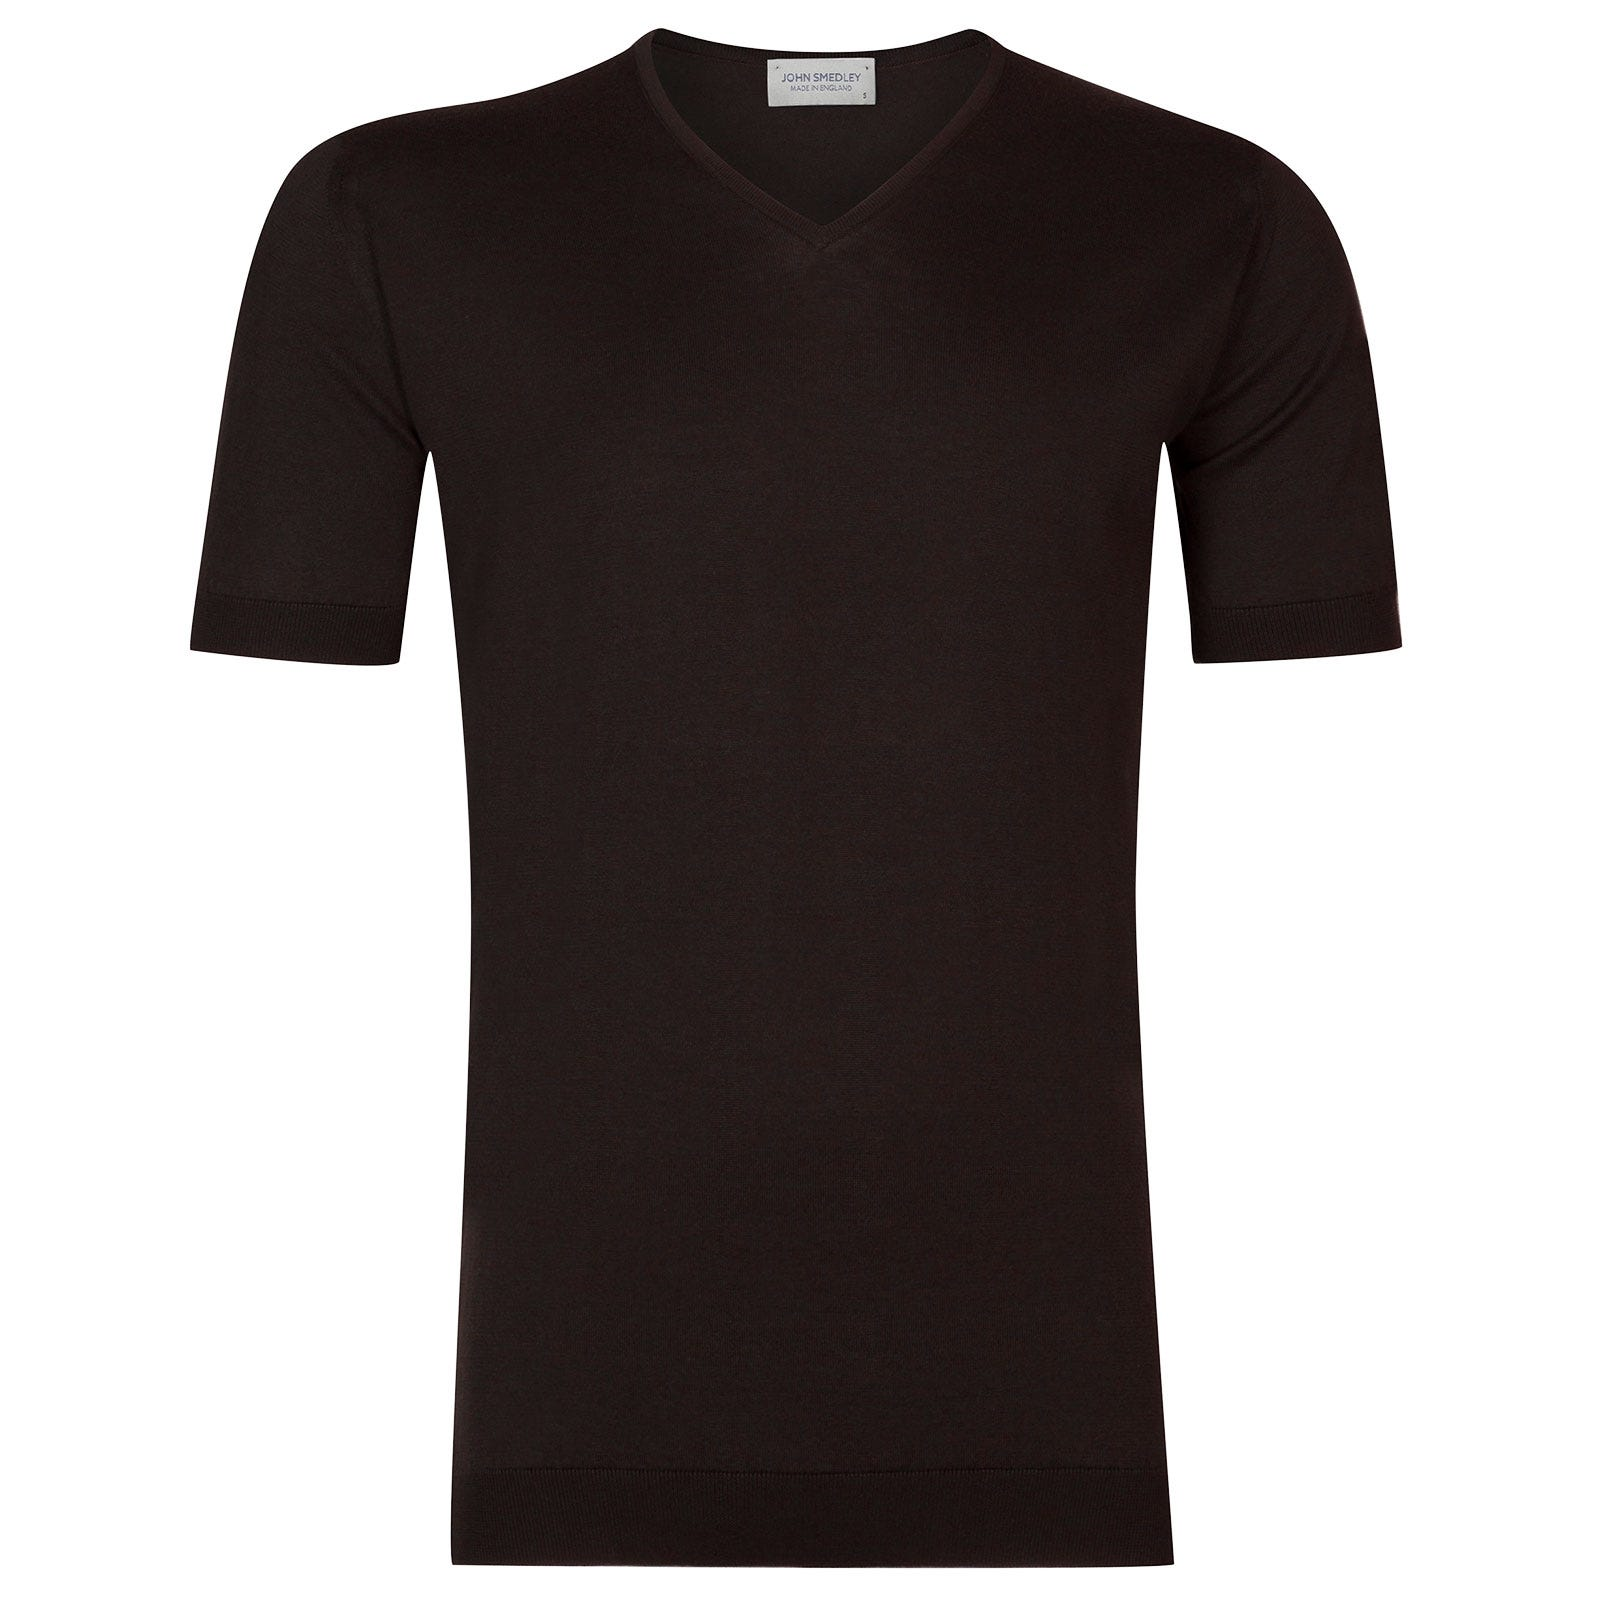 John Smedley Braedon in Dark Leather T-Shirt-LGE